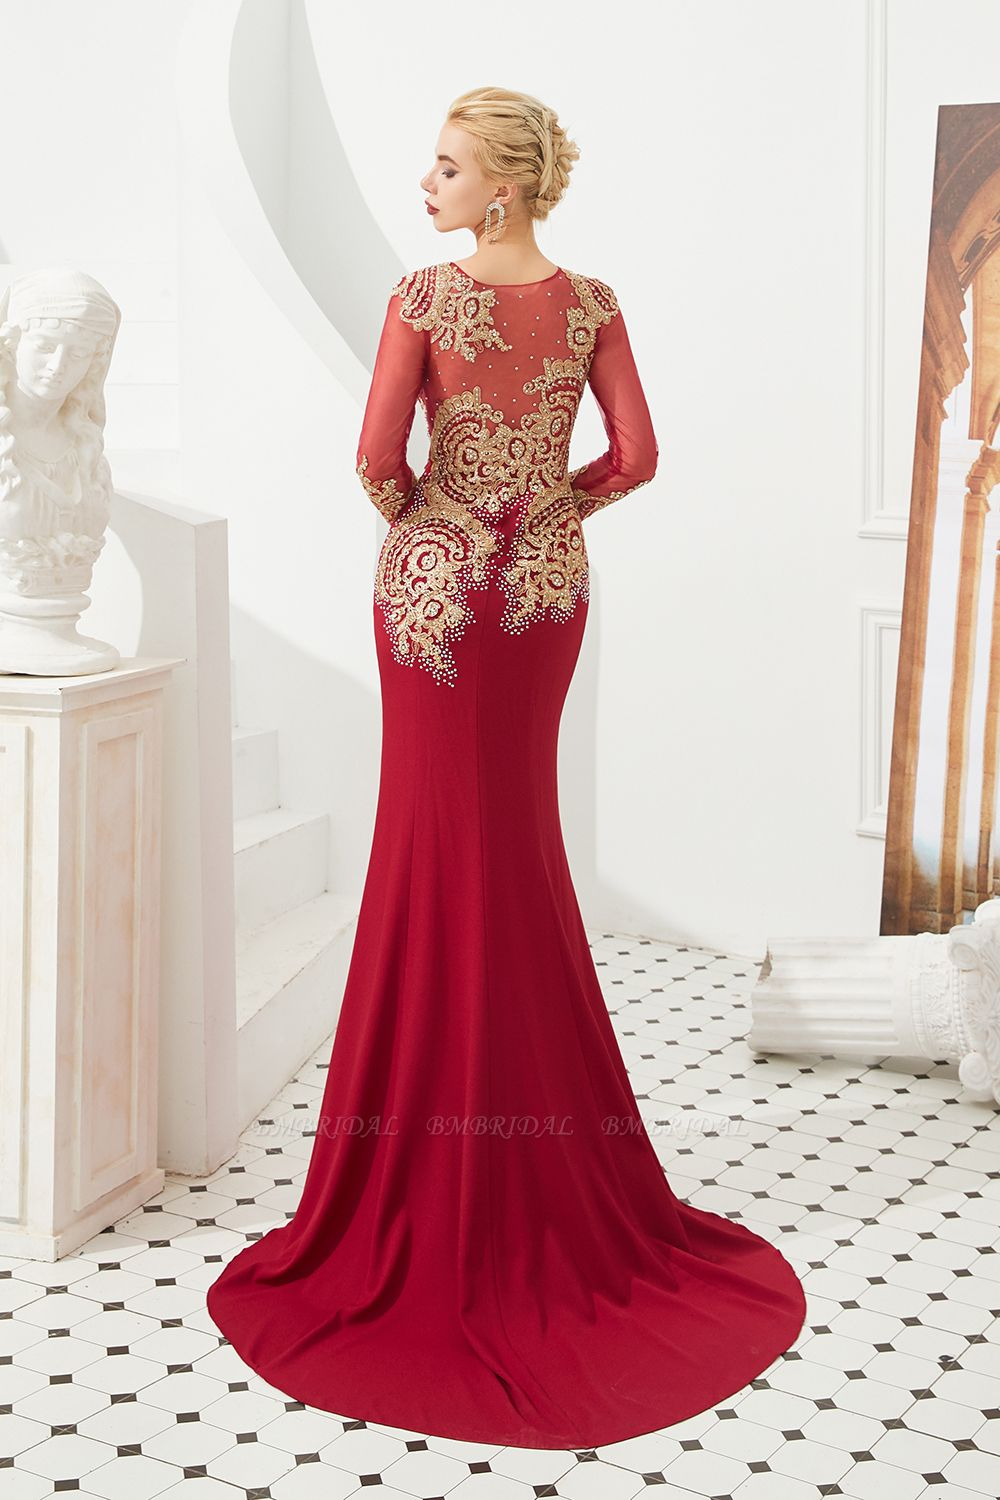 BMbridal Burgundy Long Sleeve Mermaid Prom Dress With Gold Appliques Online